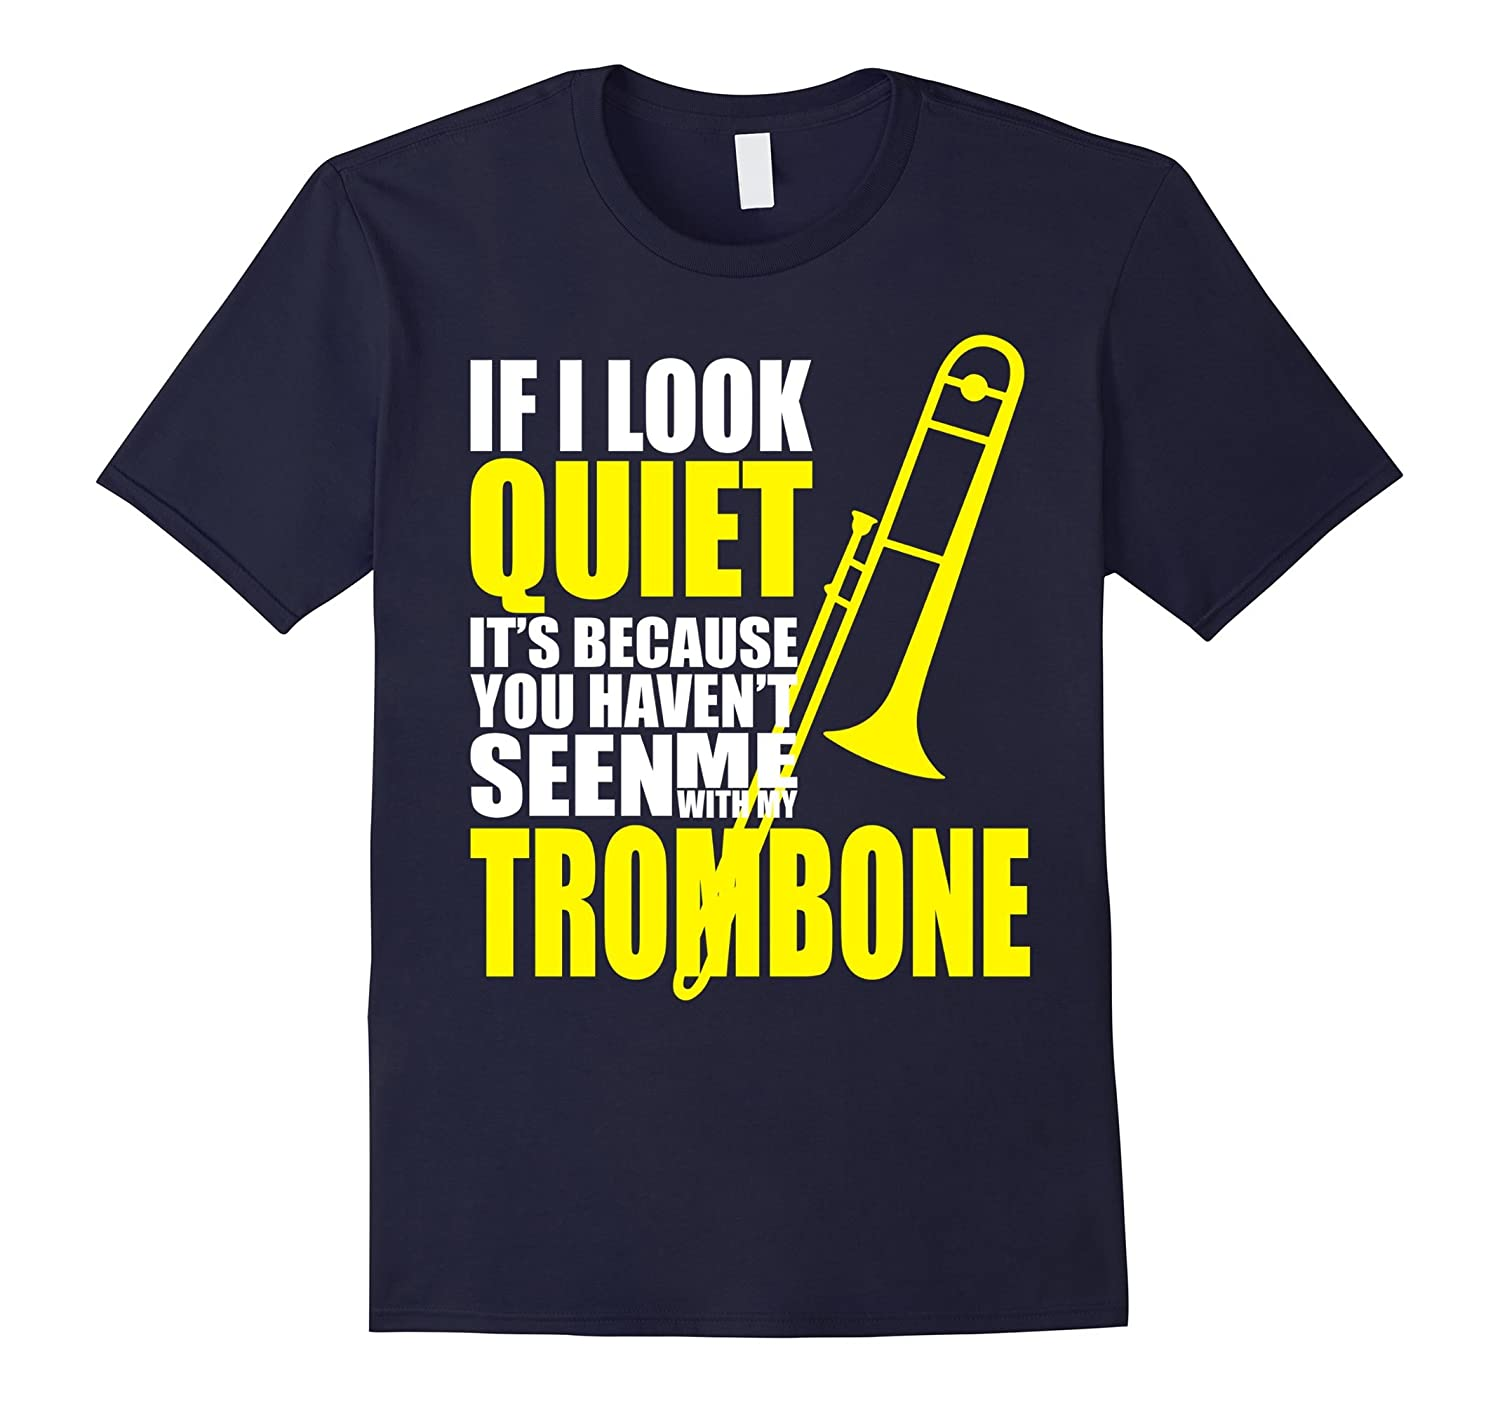 You haven't seen me with my Trombone T shirt-CL